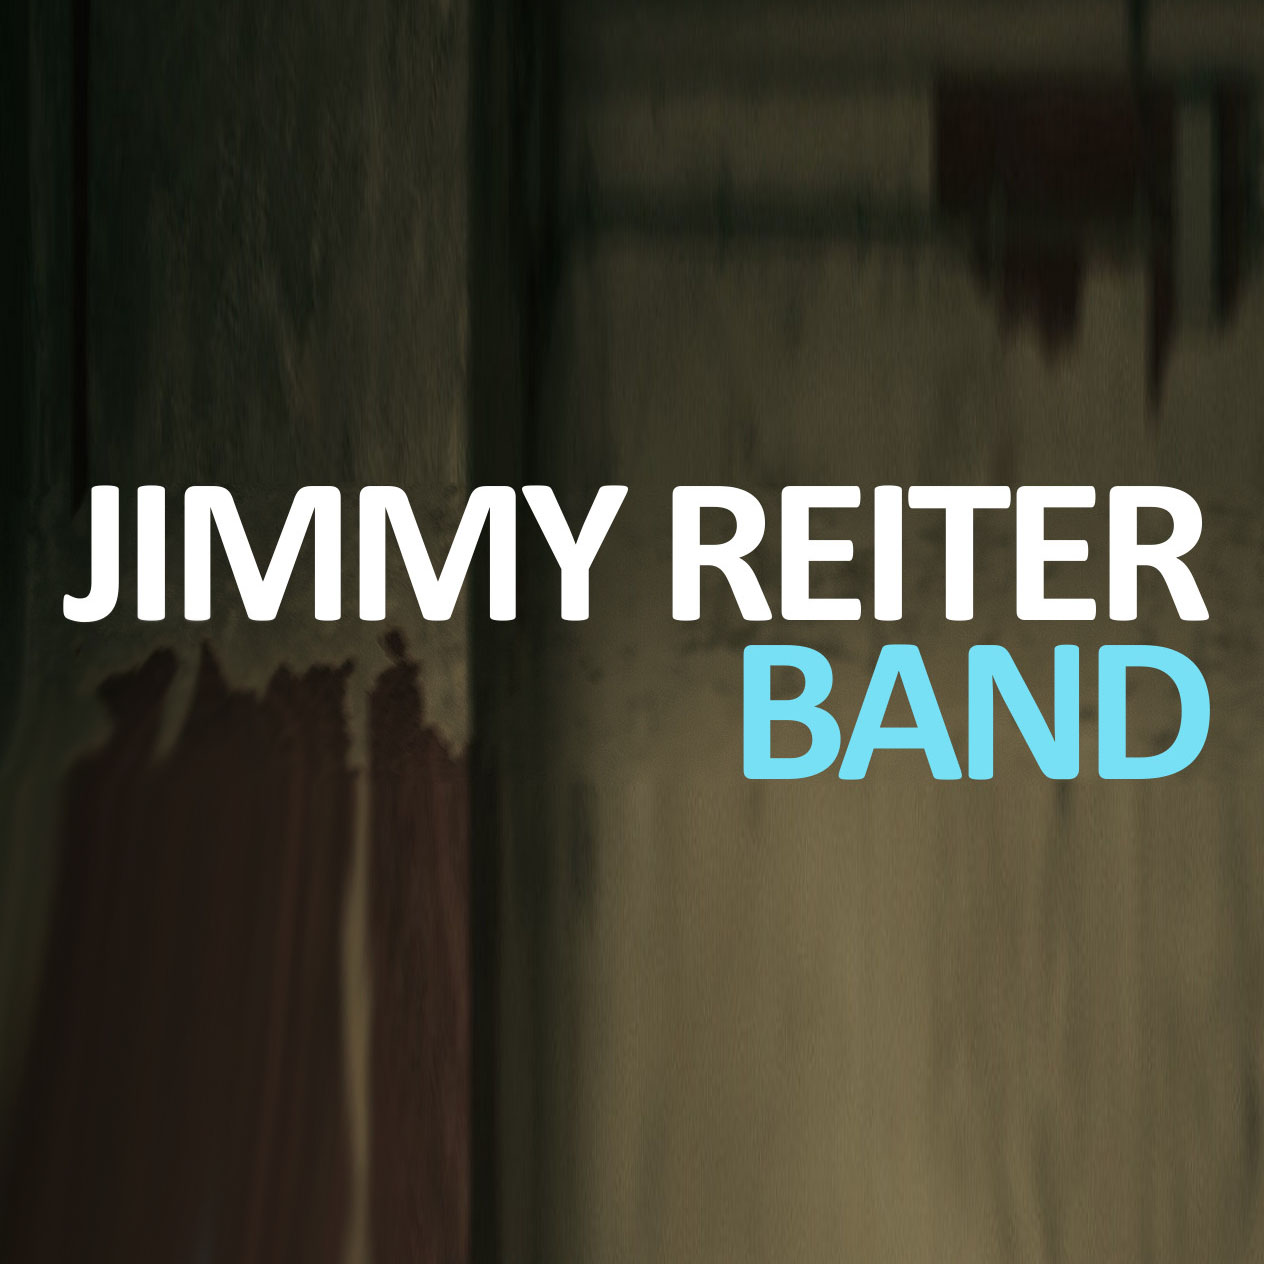 Jimmy Reiter Band